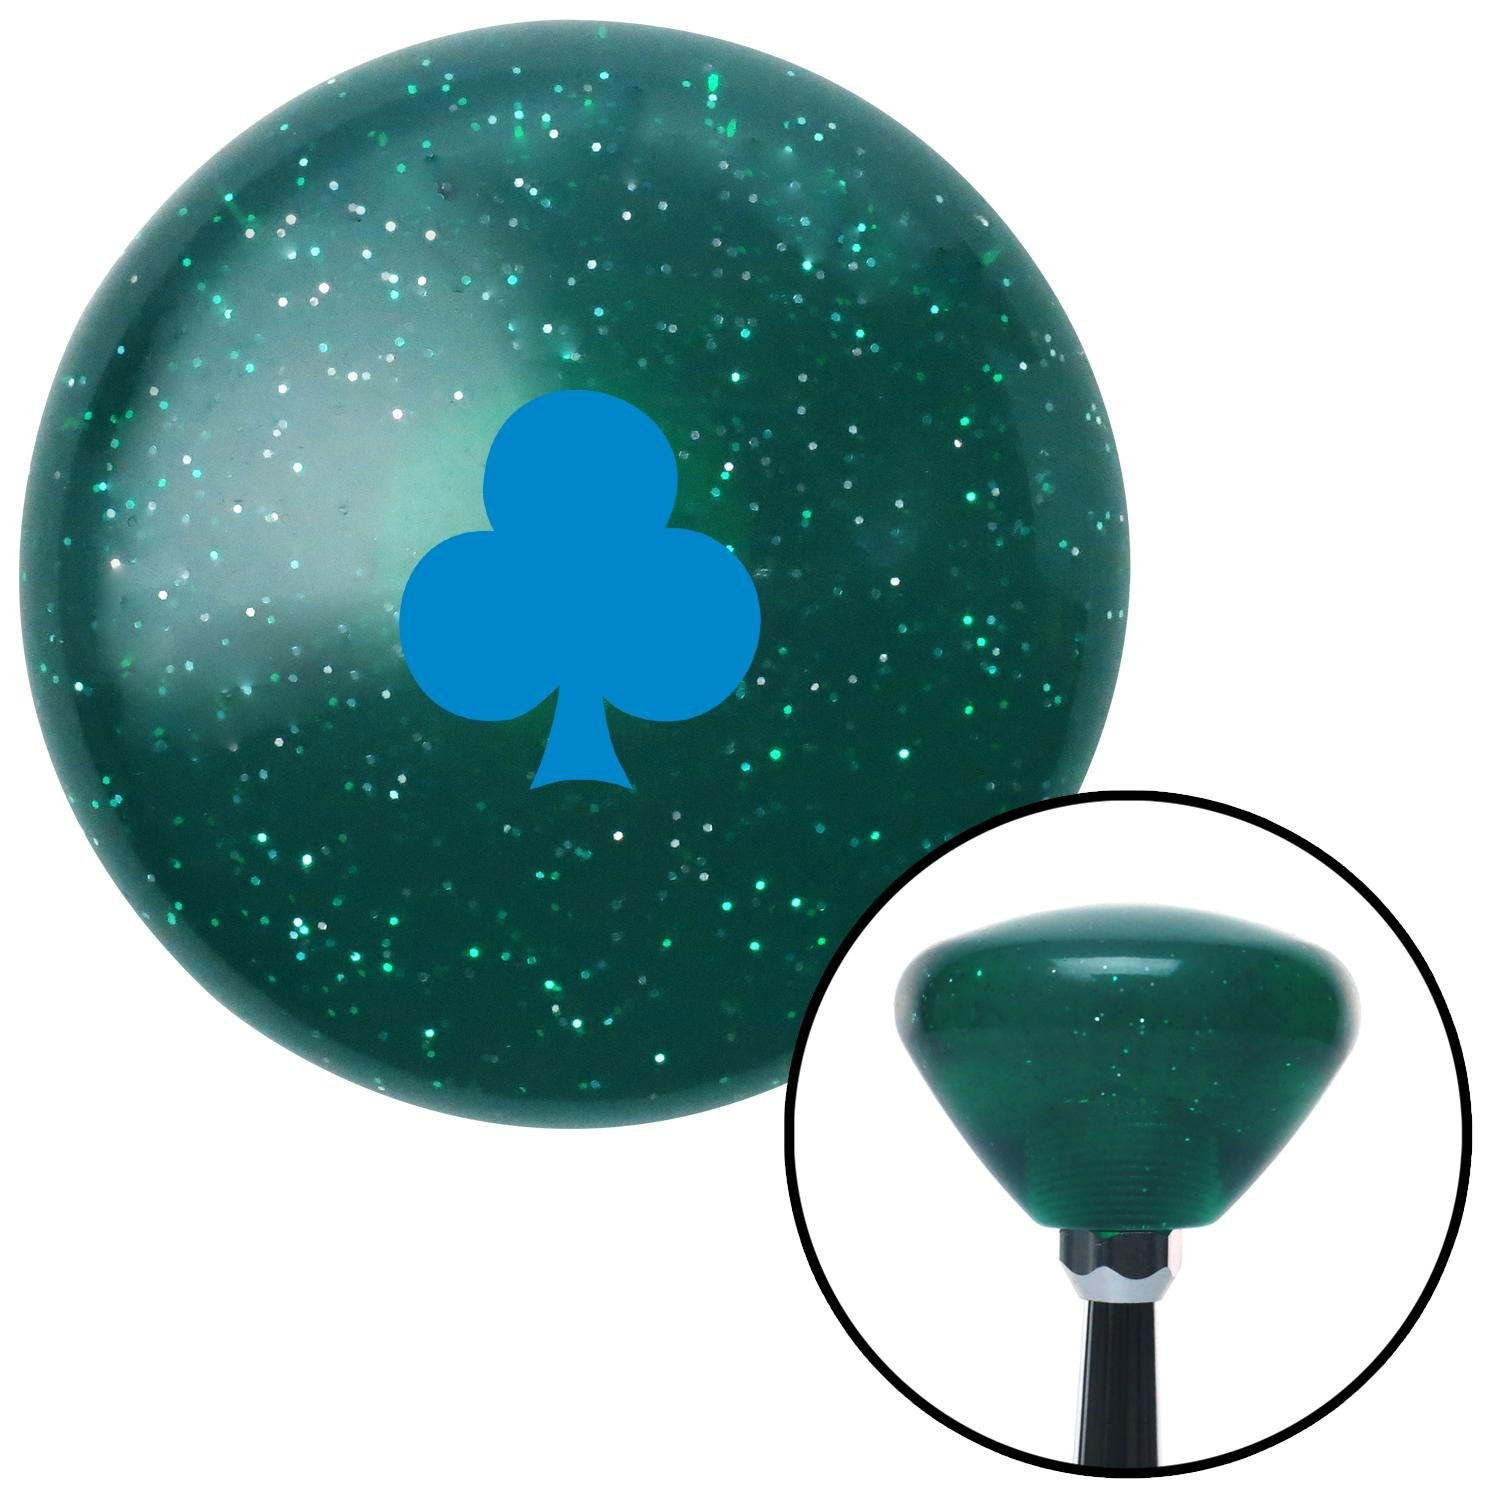 American Shifter 291536 Shift Knob Blue Clubs Green Retro Metal Flake with M16 x 1.5 Insert